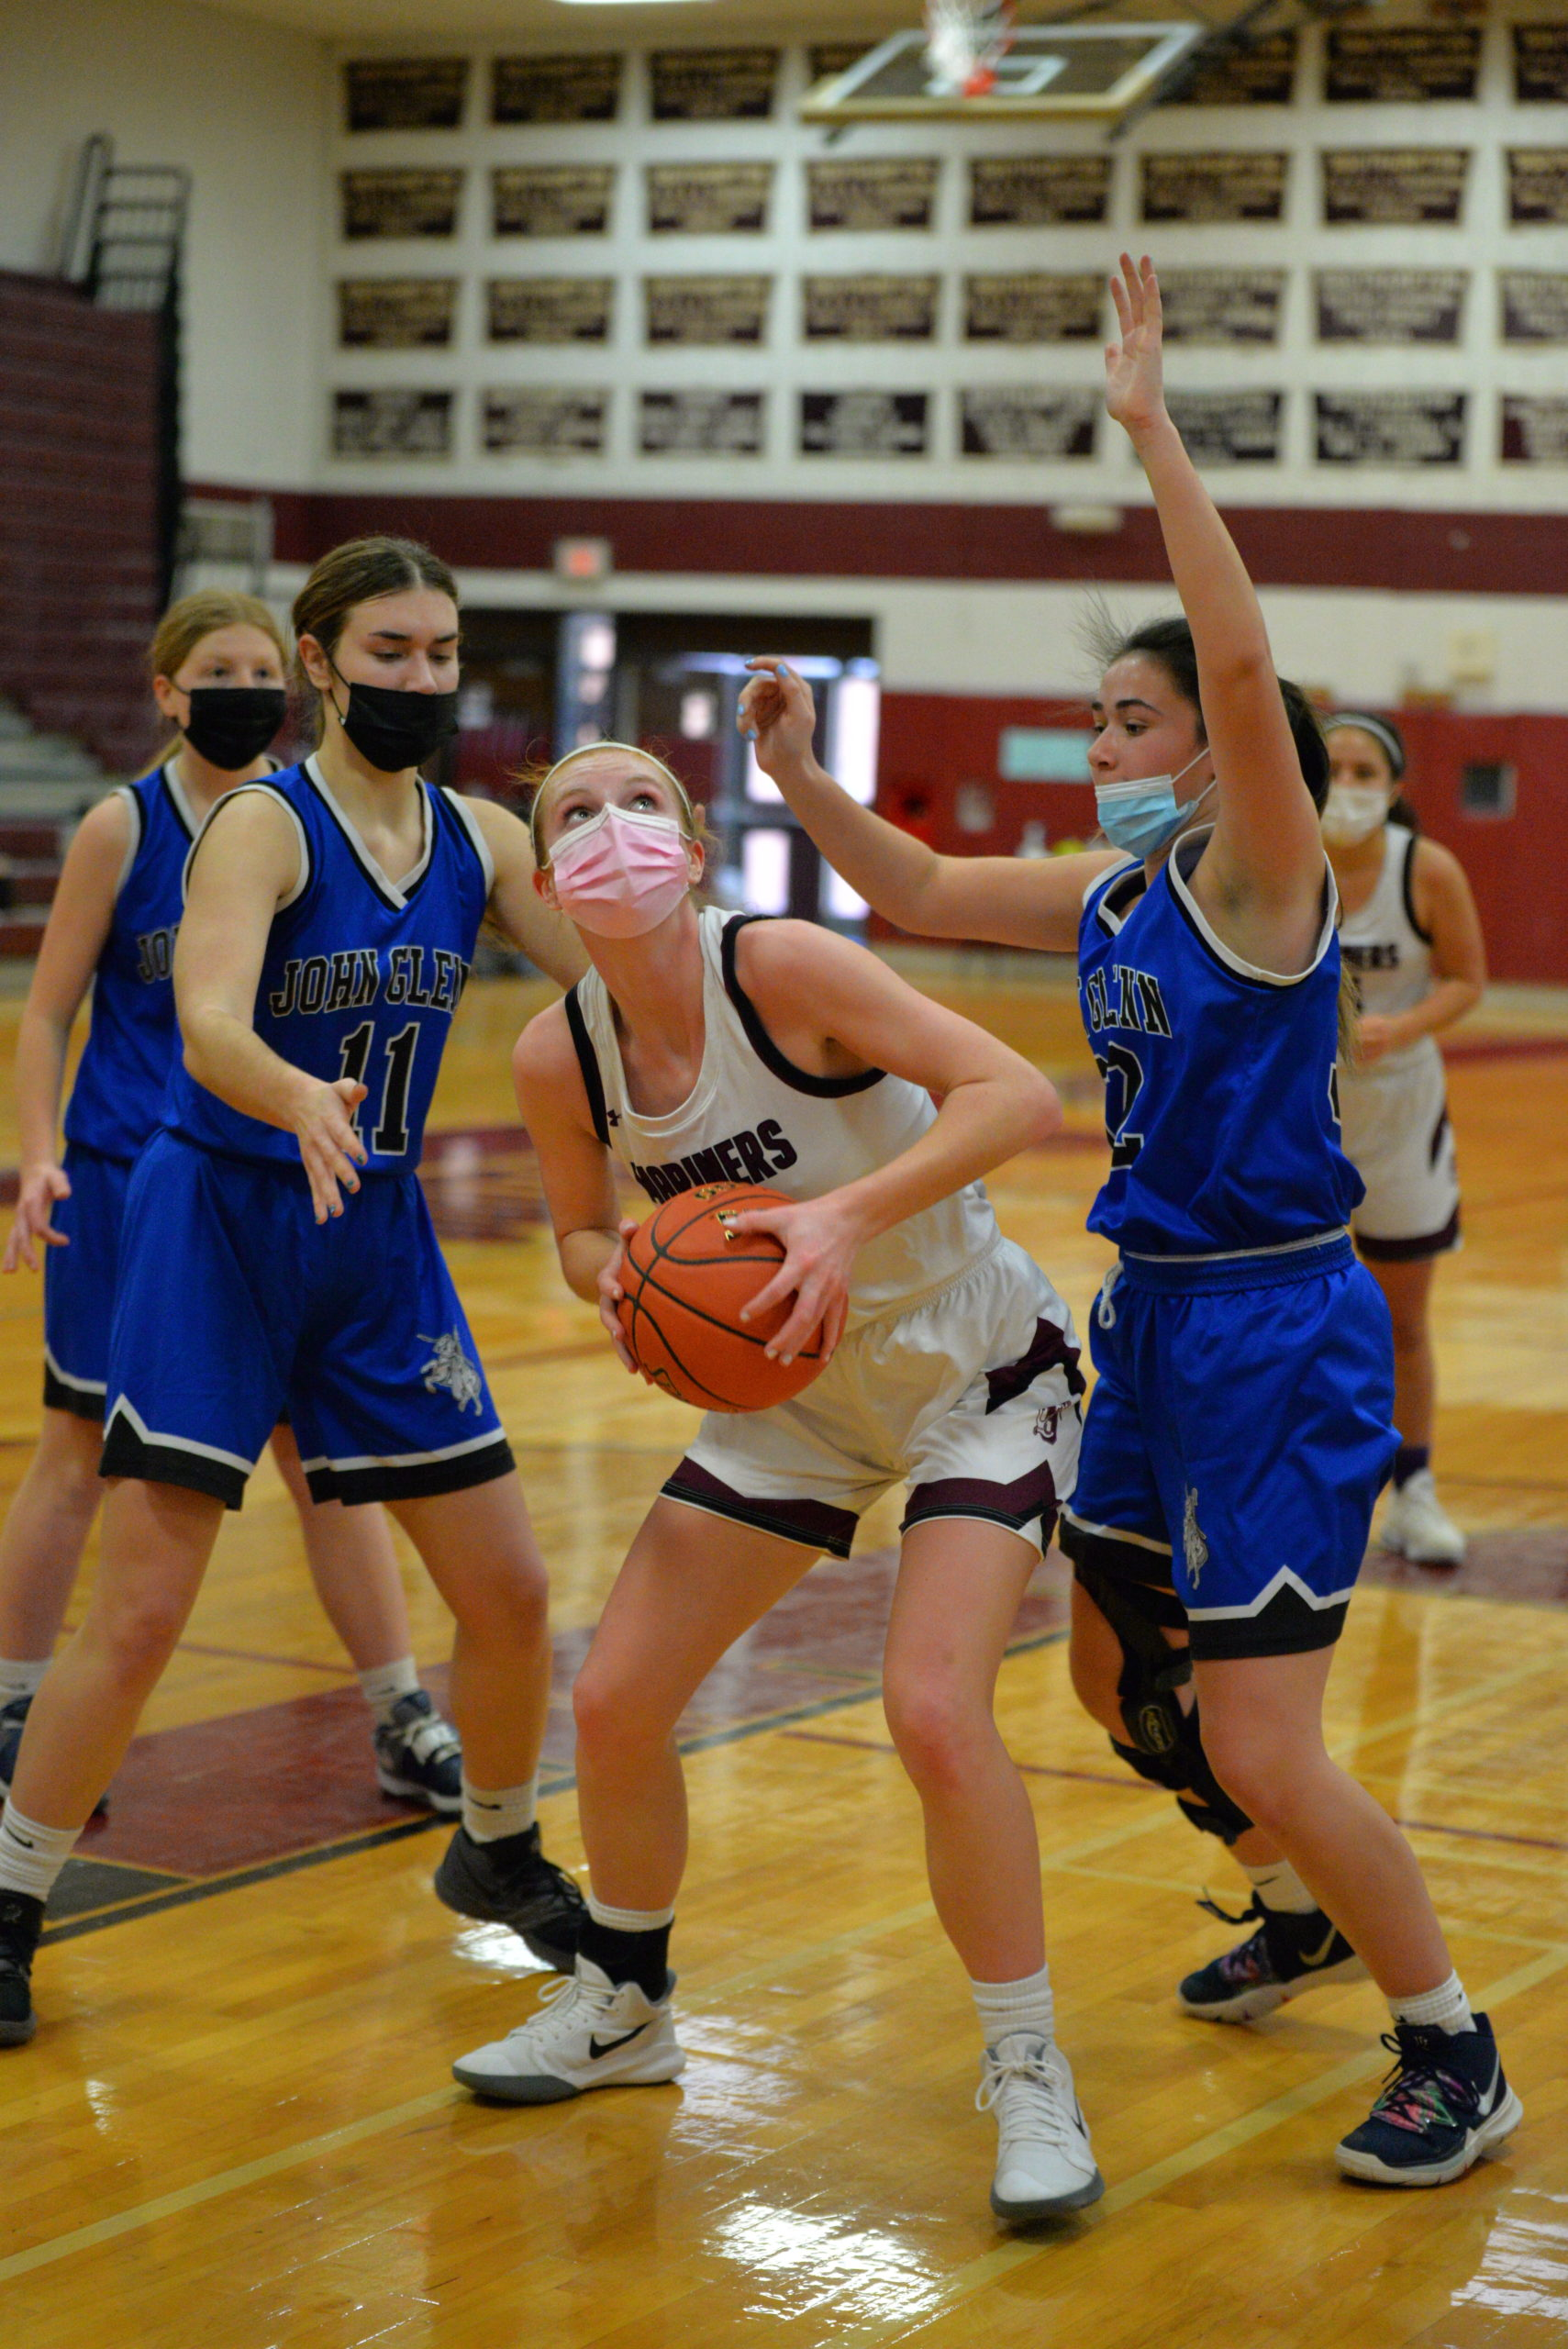 Lady Mariner Carly Cameron looks to go up for two points against Elwood/John Glenn defenders.